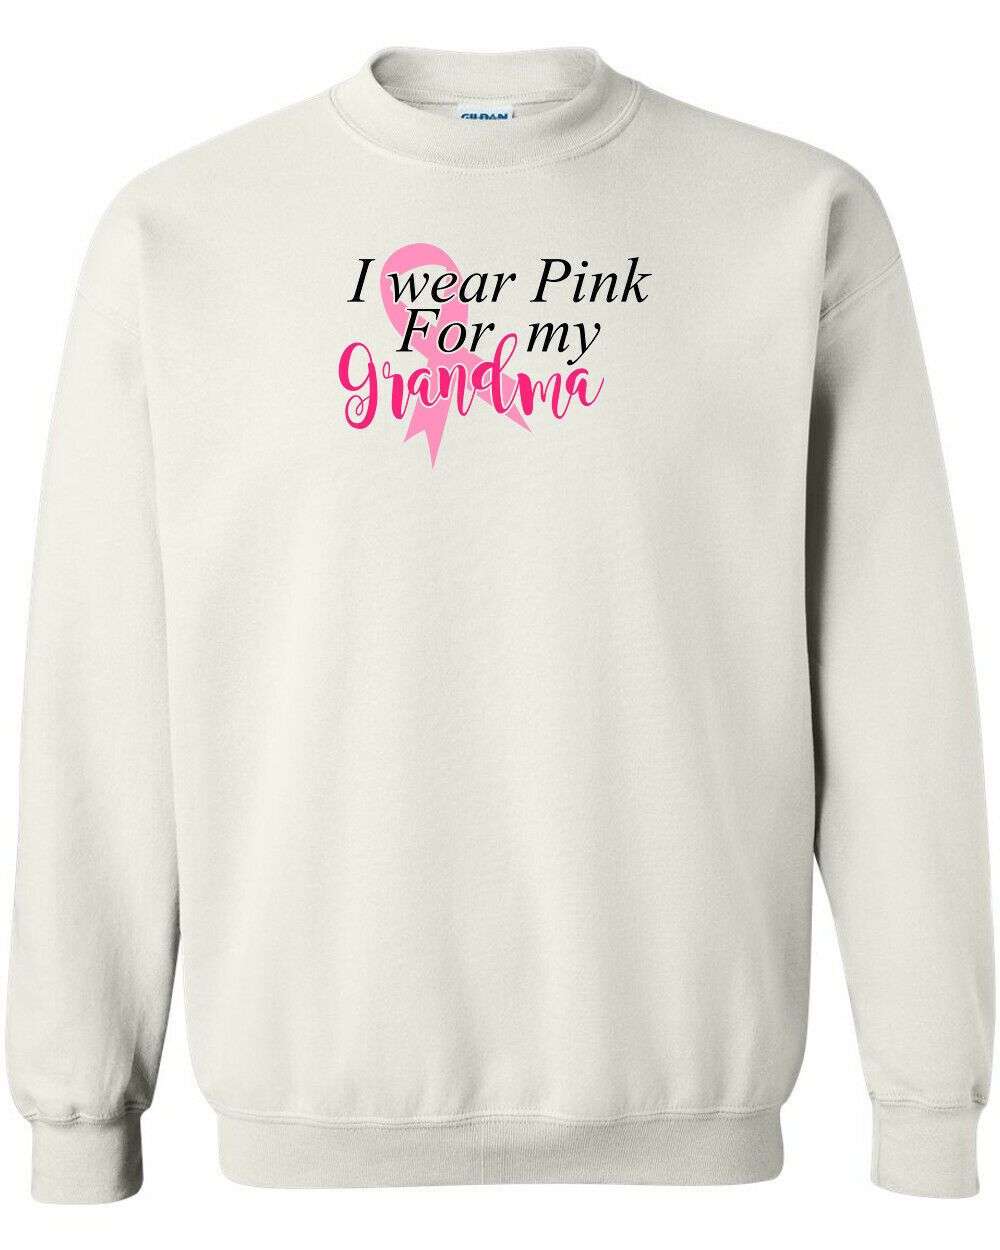 Primary image for I Wear Pink For My Grandma Breast Cancer Awareness Crewneck Sweatshirt New White